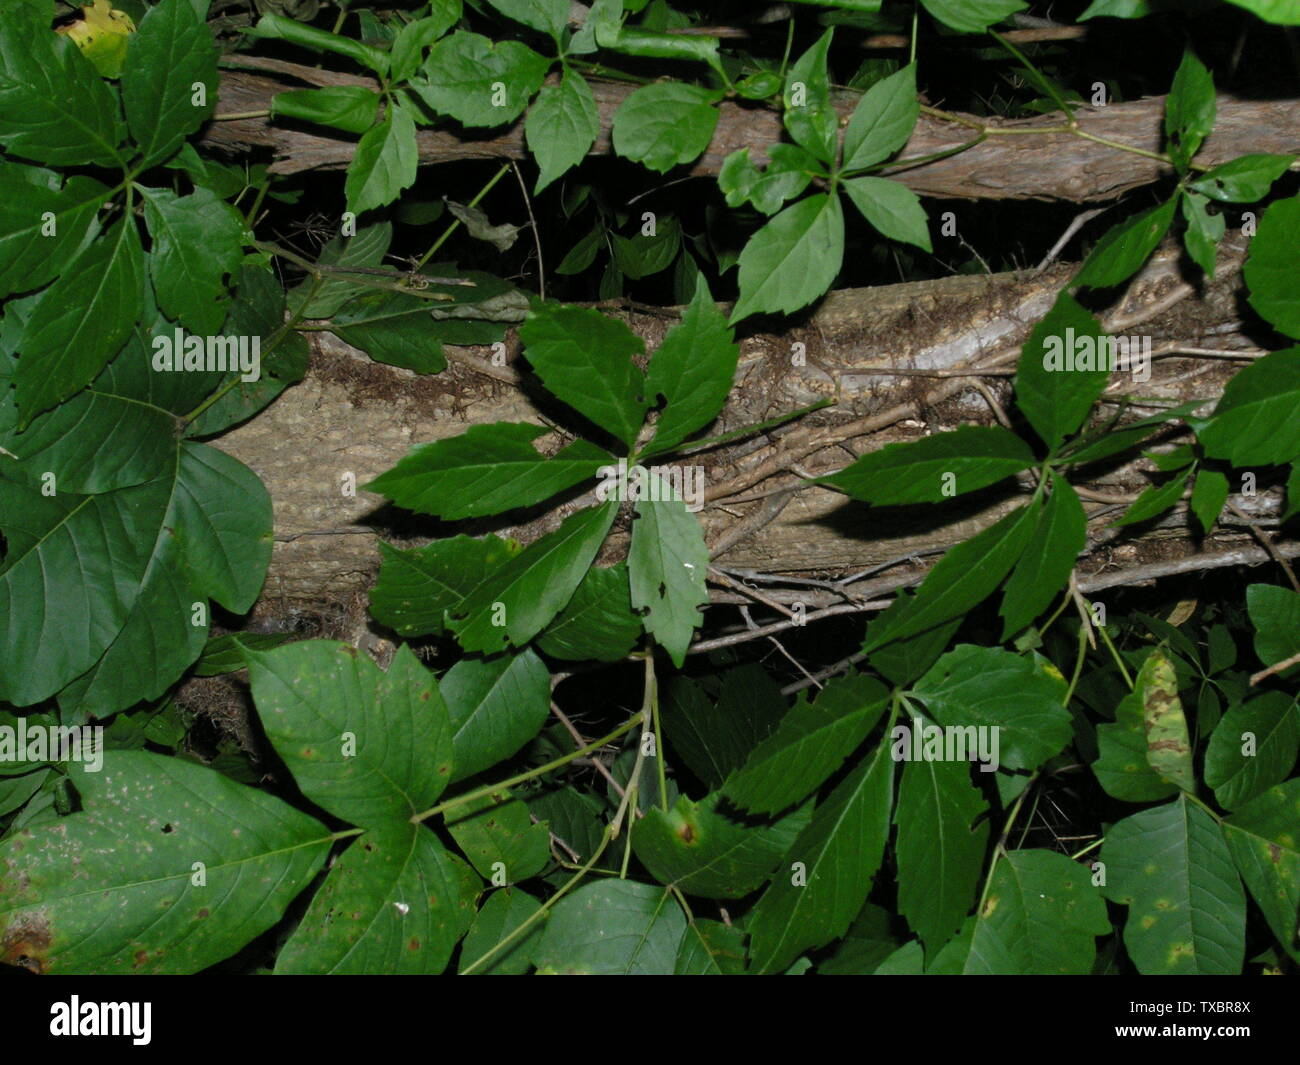 'I took this picture of poison ivy, grape, and virginia creeper.  The grape vine in on the left and has rough bark.  The poison ivy vine is gowing on the trunk of the tree and is hairy.  Both of these vines are very large, about 4-5cm in diameter.  The virginia creeper vine in this picture is very thin and is growing on the other two vines.  Virginia creeper is the 5 leaved plant in the image.  Poison ivy leaves are visible in the bottom right of the image.; Own work by the original uploader; Jvlietstra; ' - Stock Image